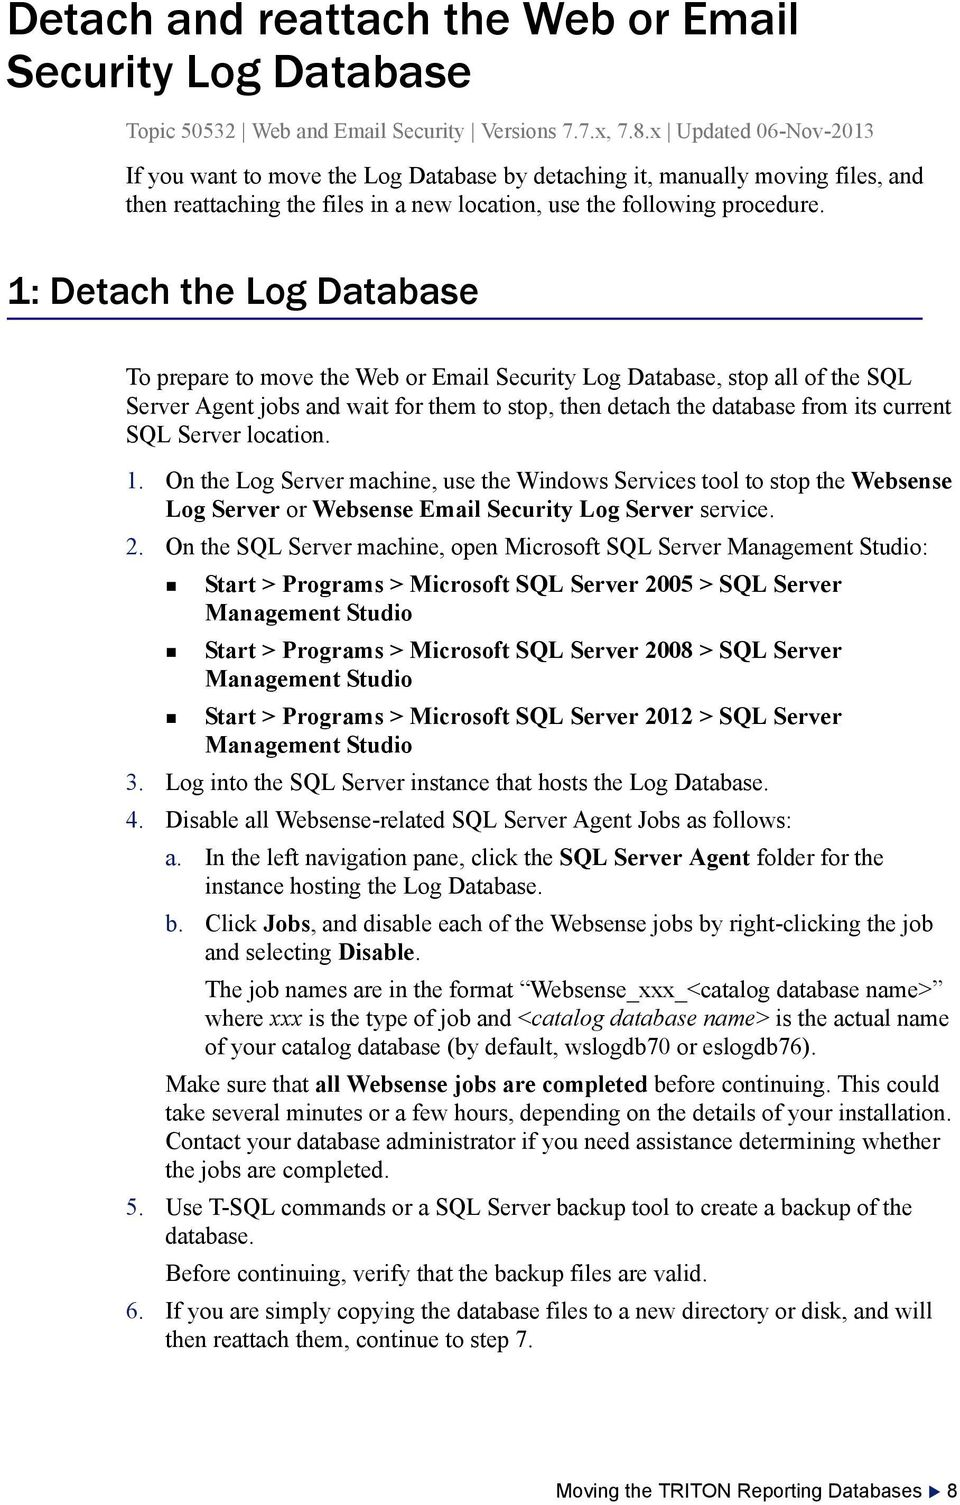 1: Detach the Log Database To prepare to move the Web or Email Security Log Database, stop all of the SQL Server Agent jobs and wait for them to stop, then detach the database from its current SQL